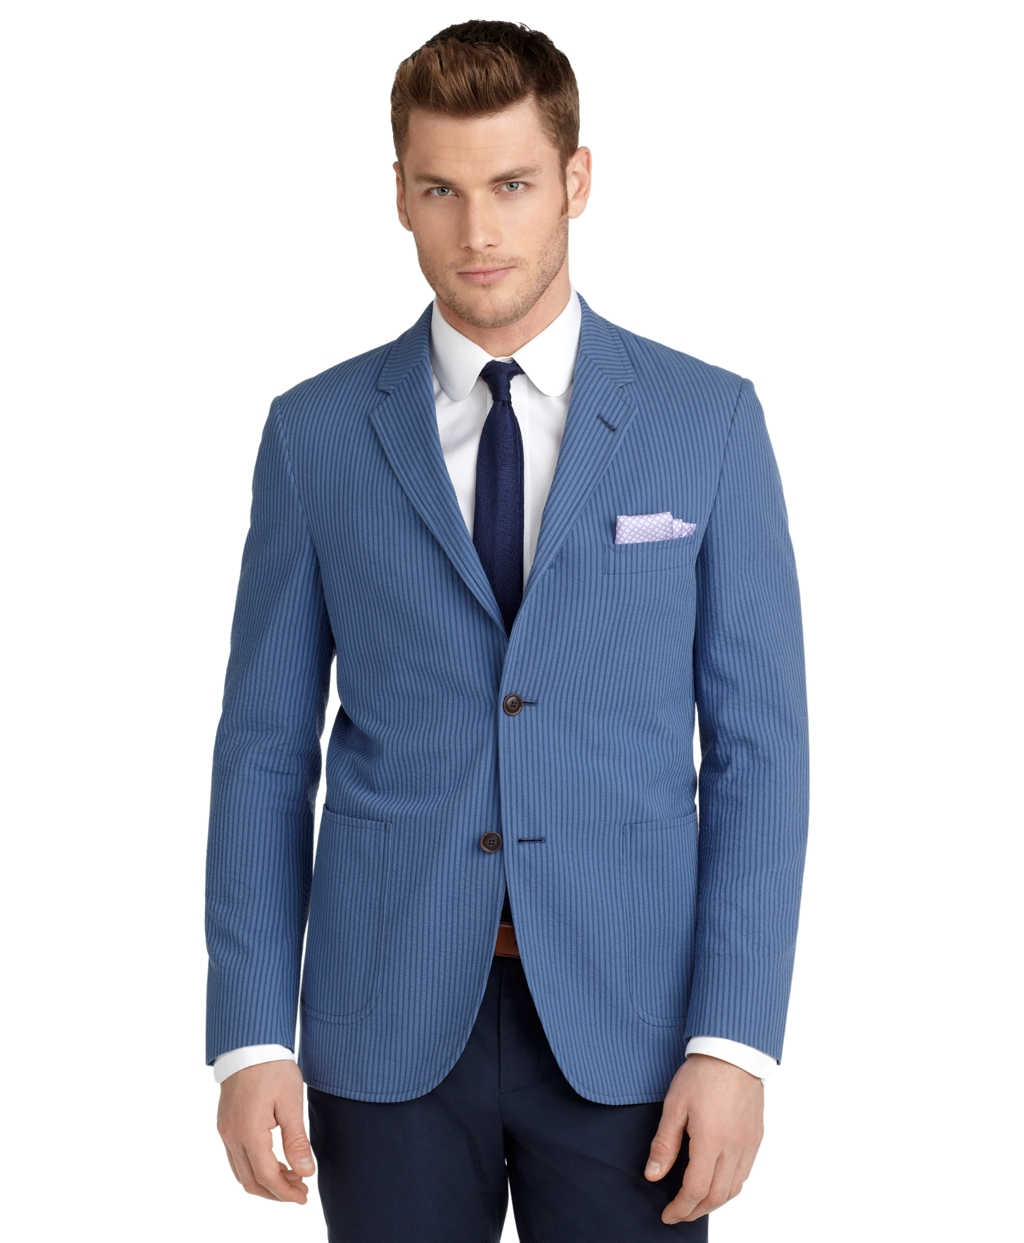 Shop for men's Sportcoats online at distrib-wq9rfuqq.tk Browse the latest SportCoats styles for men from Jos. A Bank. FREE shipping on orders over $